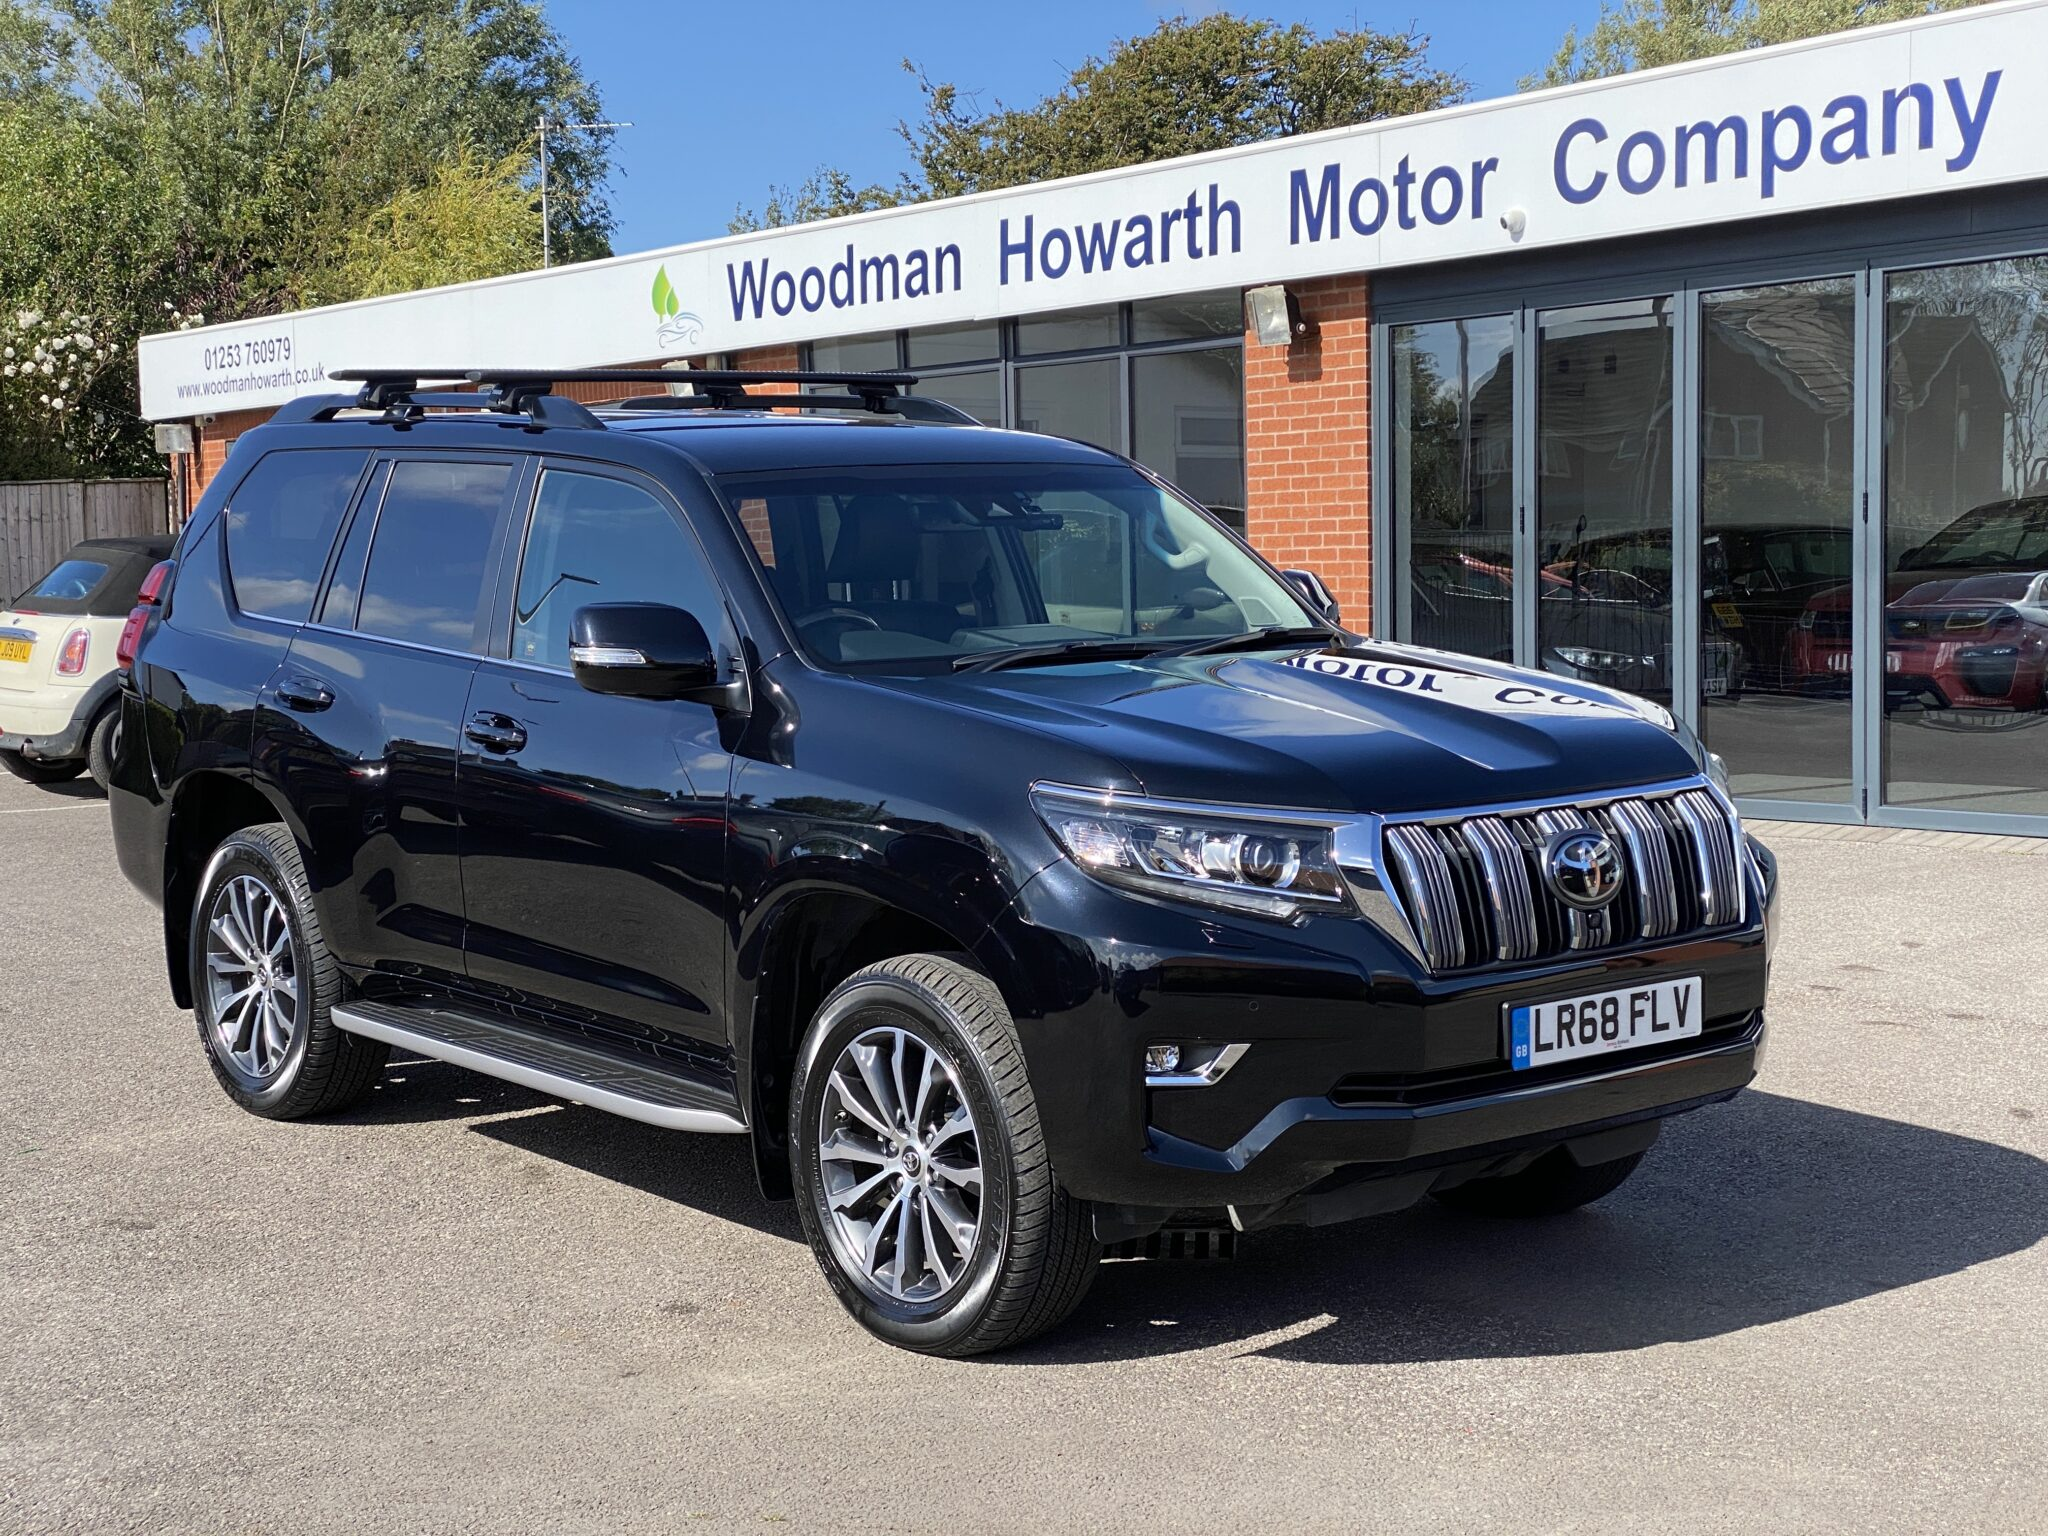 2018 68 TOYOTA LANDCRUISER INVINCIBLE 2.8D AUTO 4WD 7 SEATER FSH Very High Spec Low Miles Immaculate